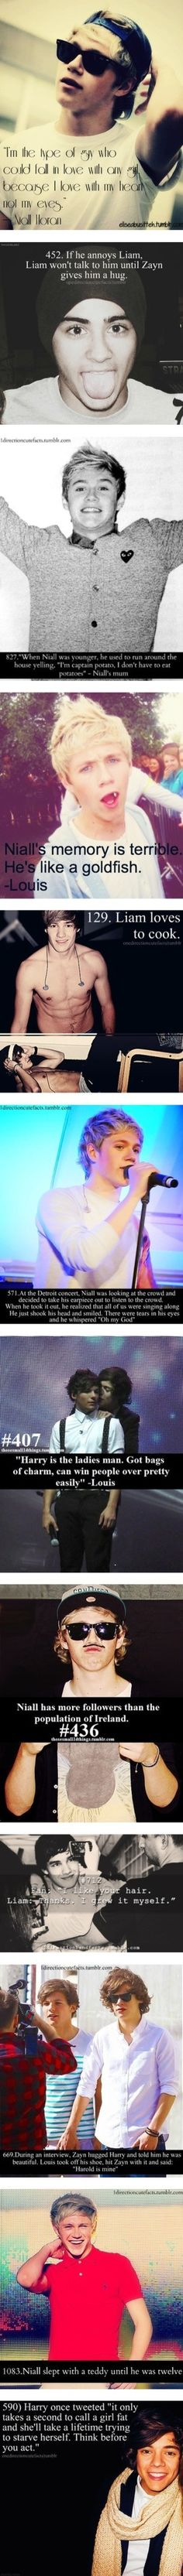 1D facts ;] by lauralovesonedirection ❤ liked on Polyvore>>> awwwww the last one:) my heart just melted!